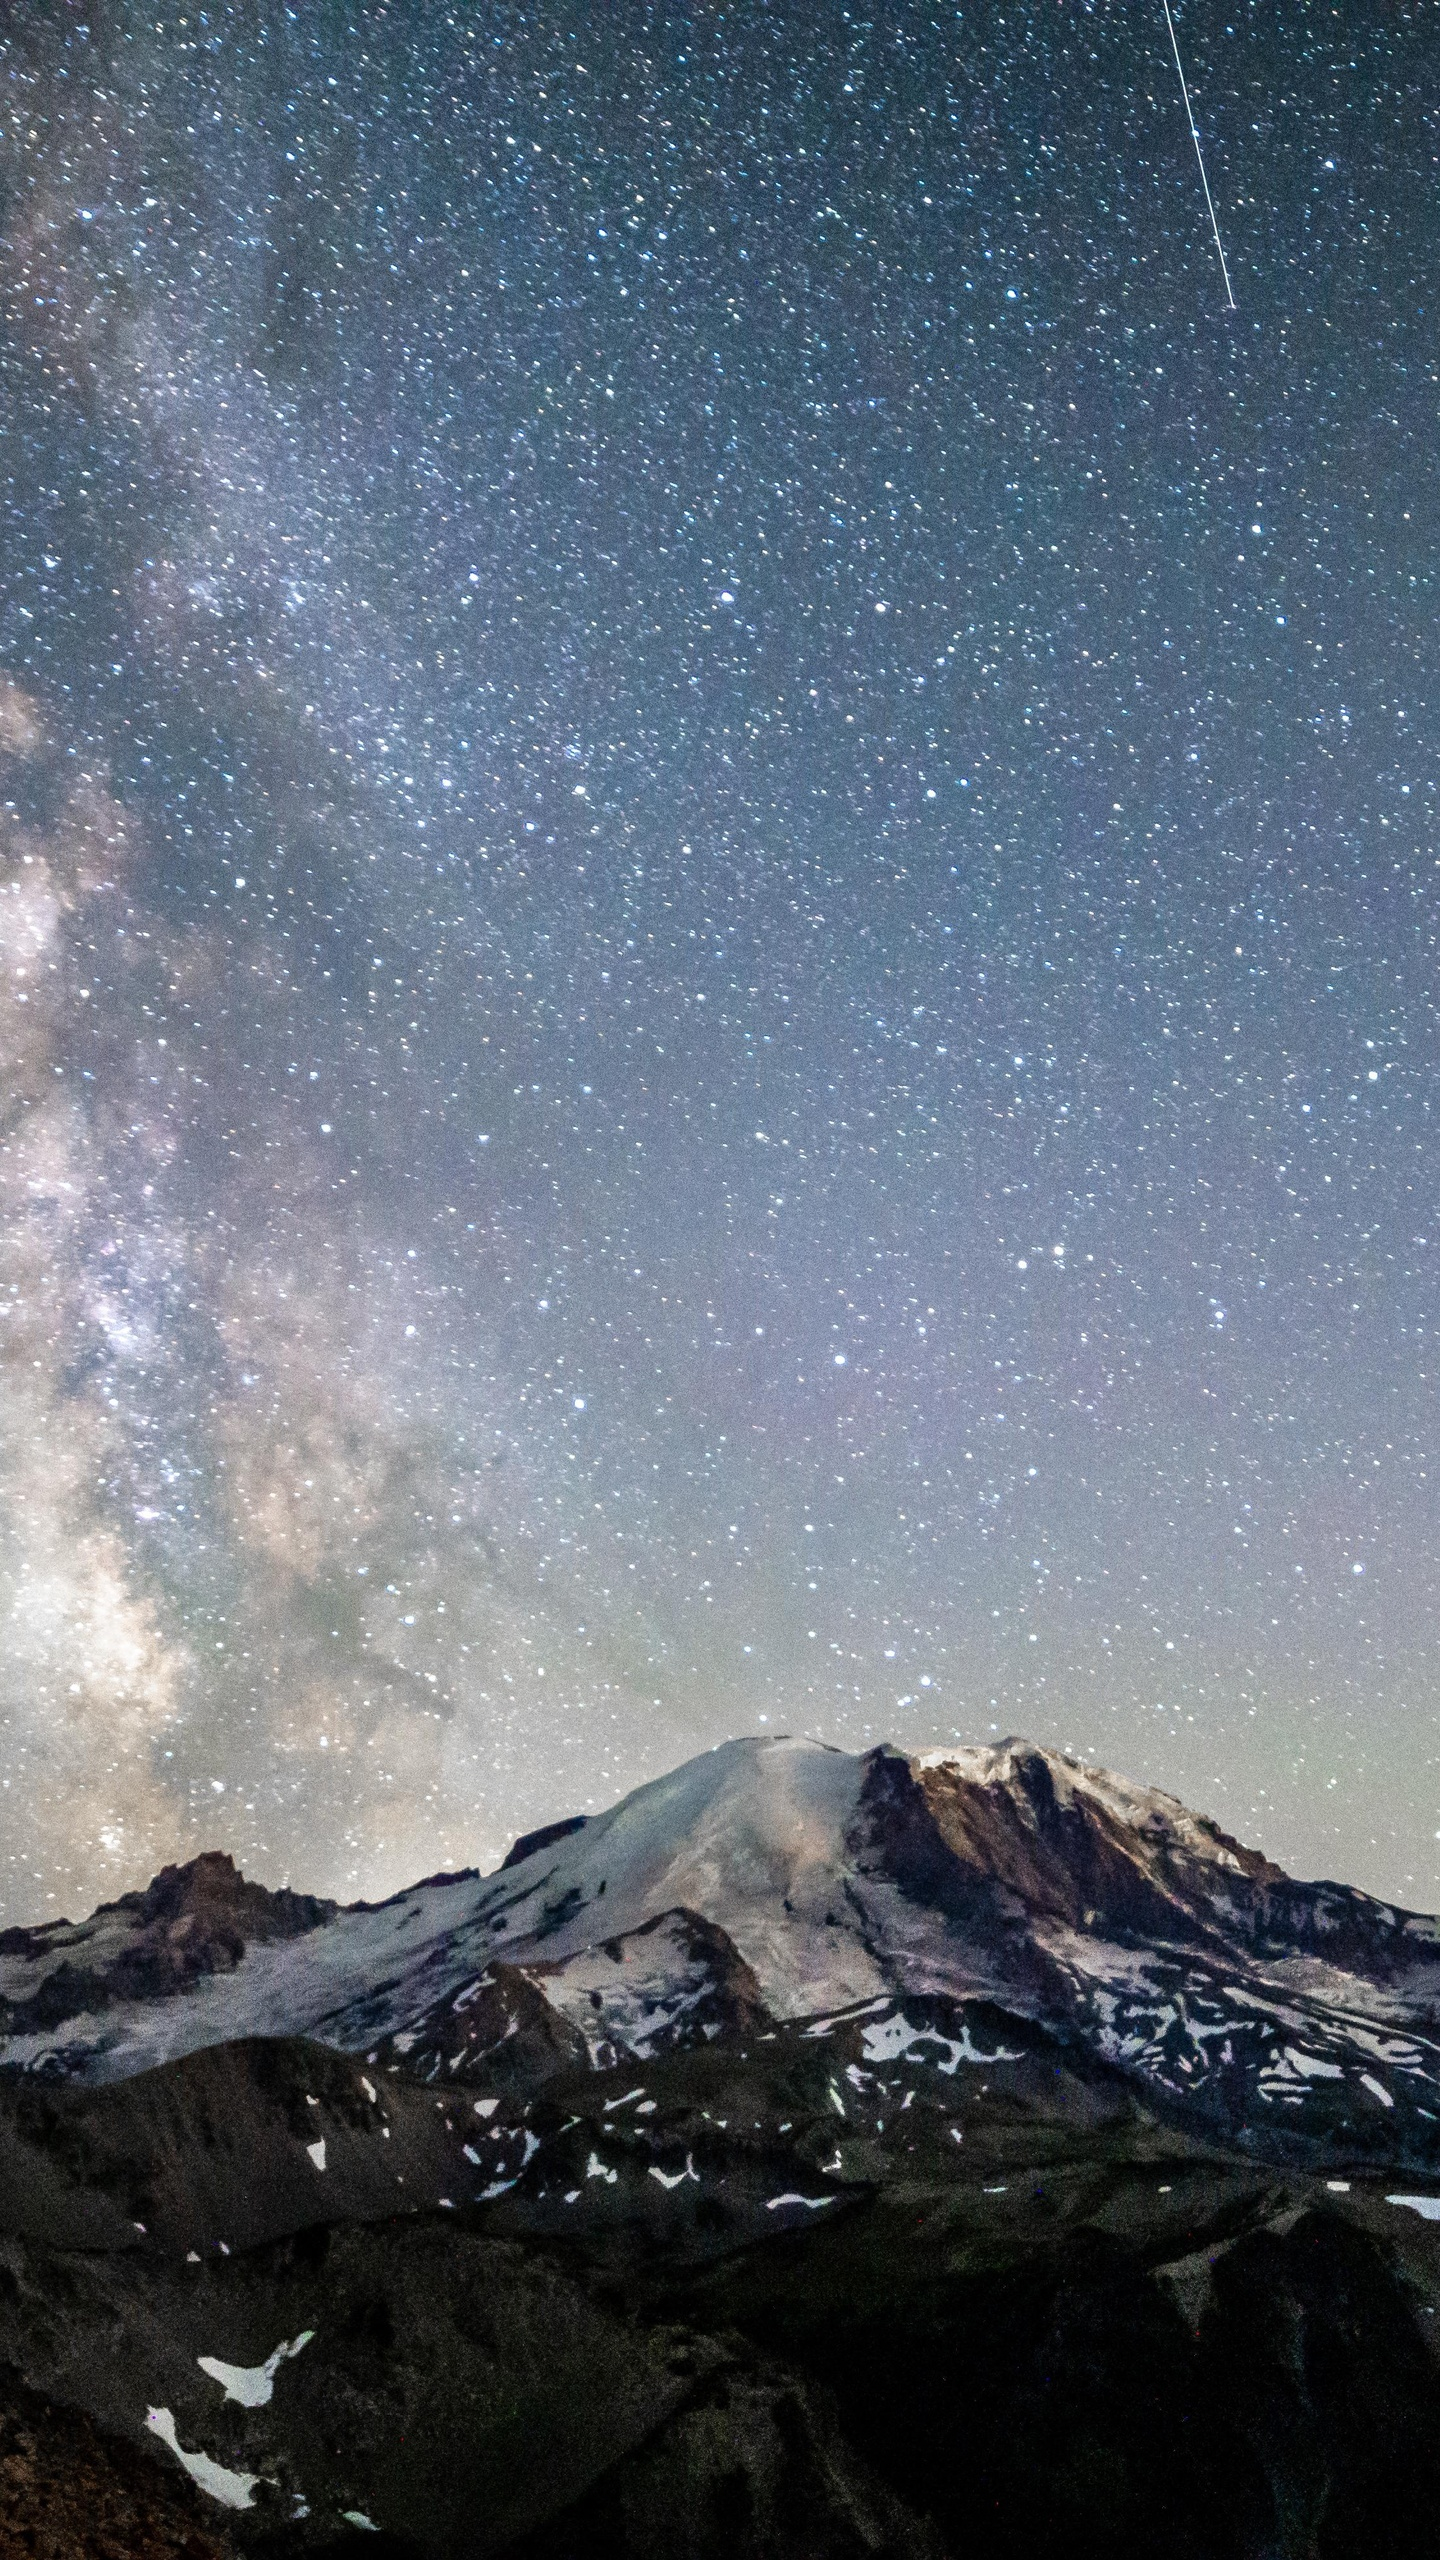 mt-rainier-under-the-nights-sky-5k-o4.jpg